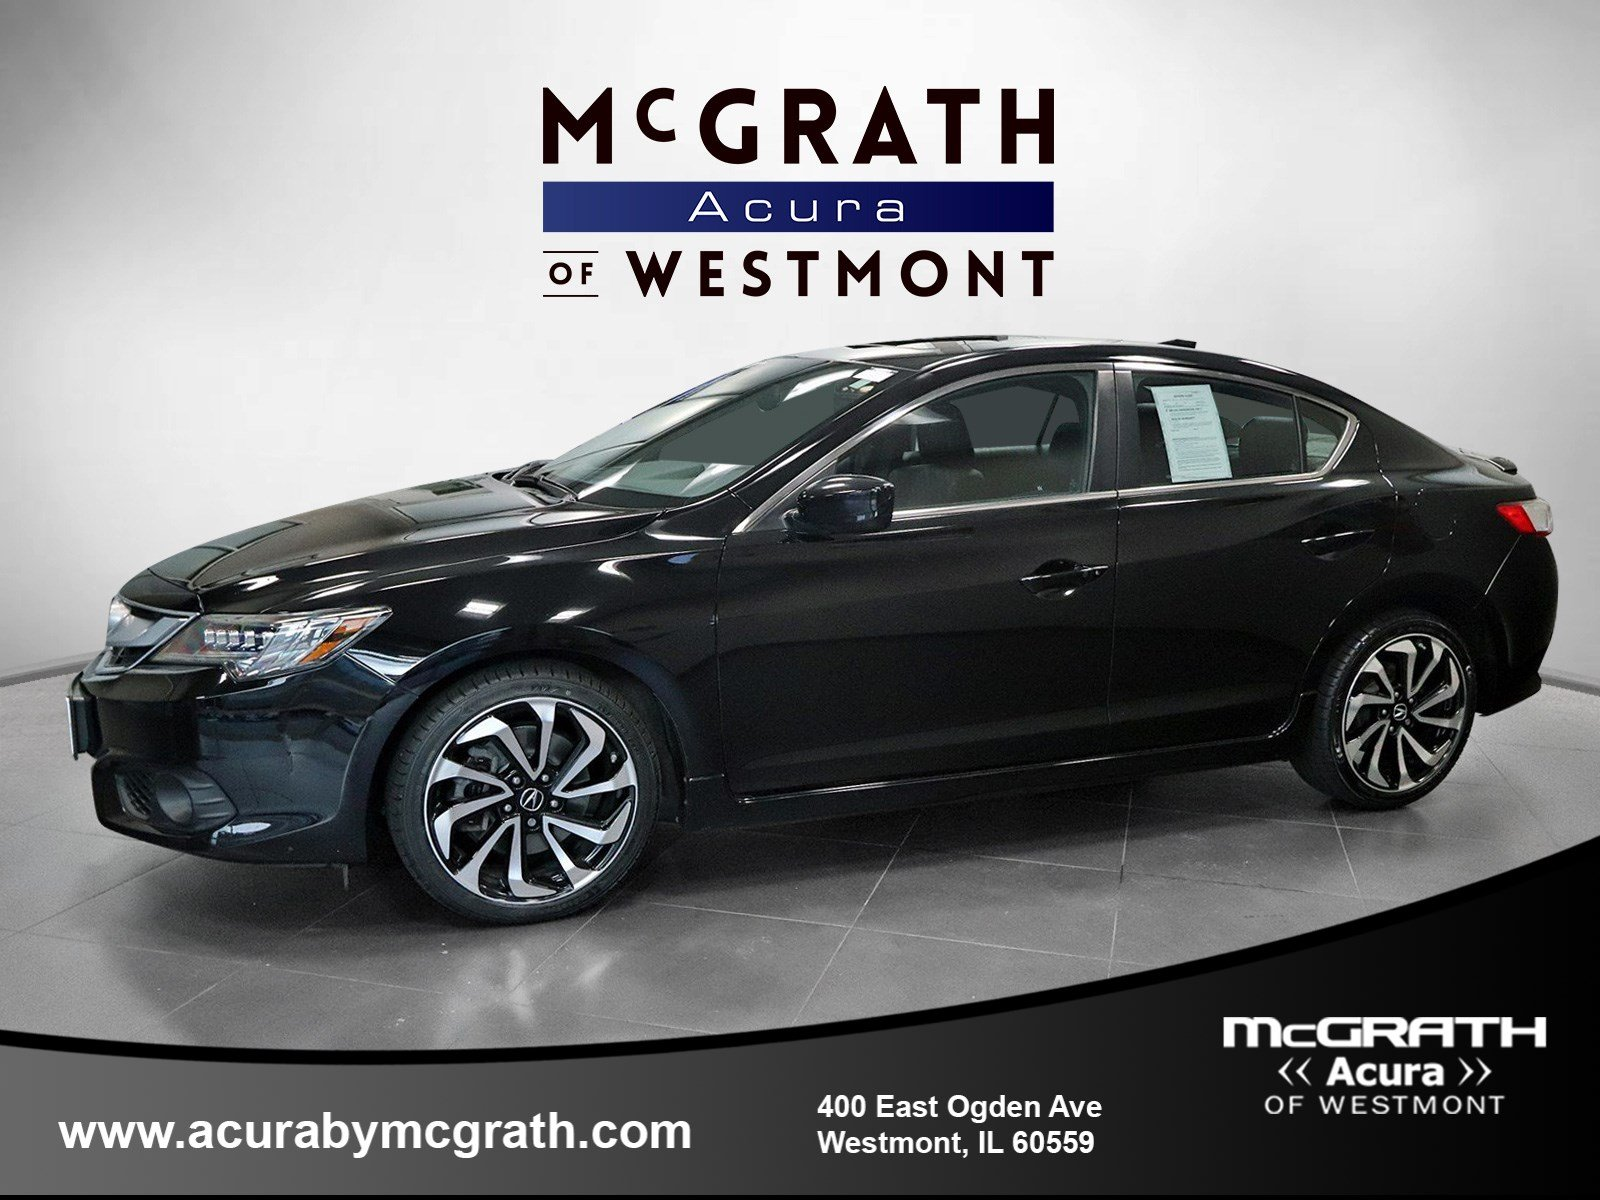 Certified Pre-Owned 2017 Acura ILX w/Premium/A-SPEC Pkg